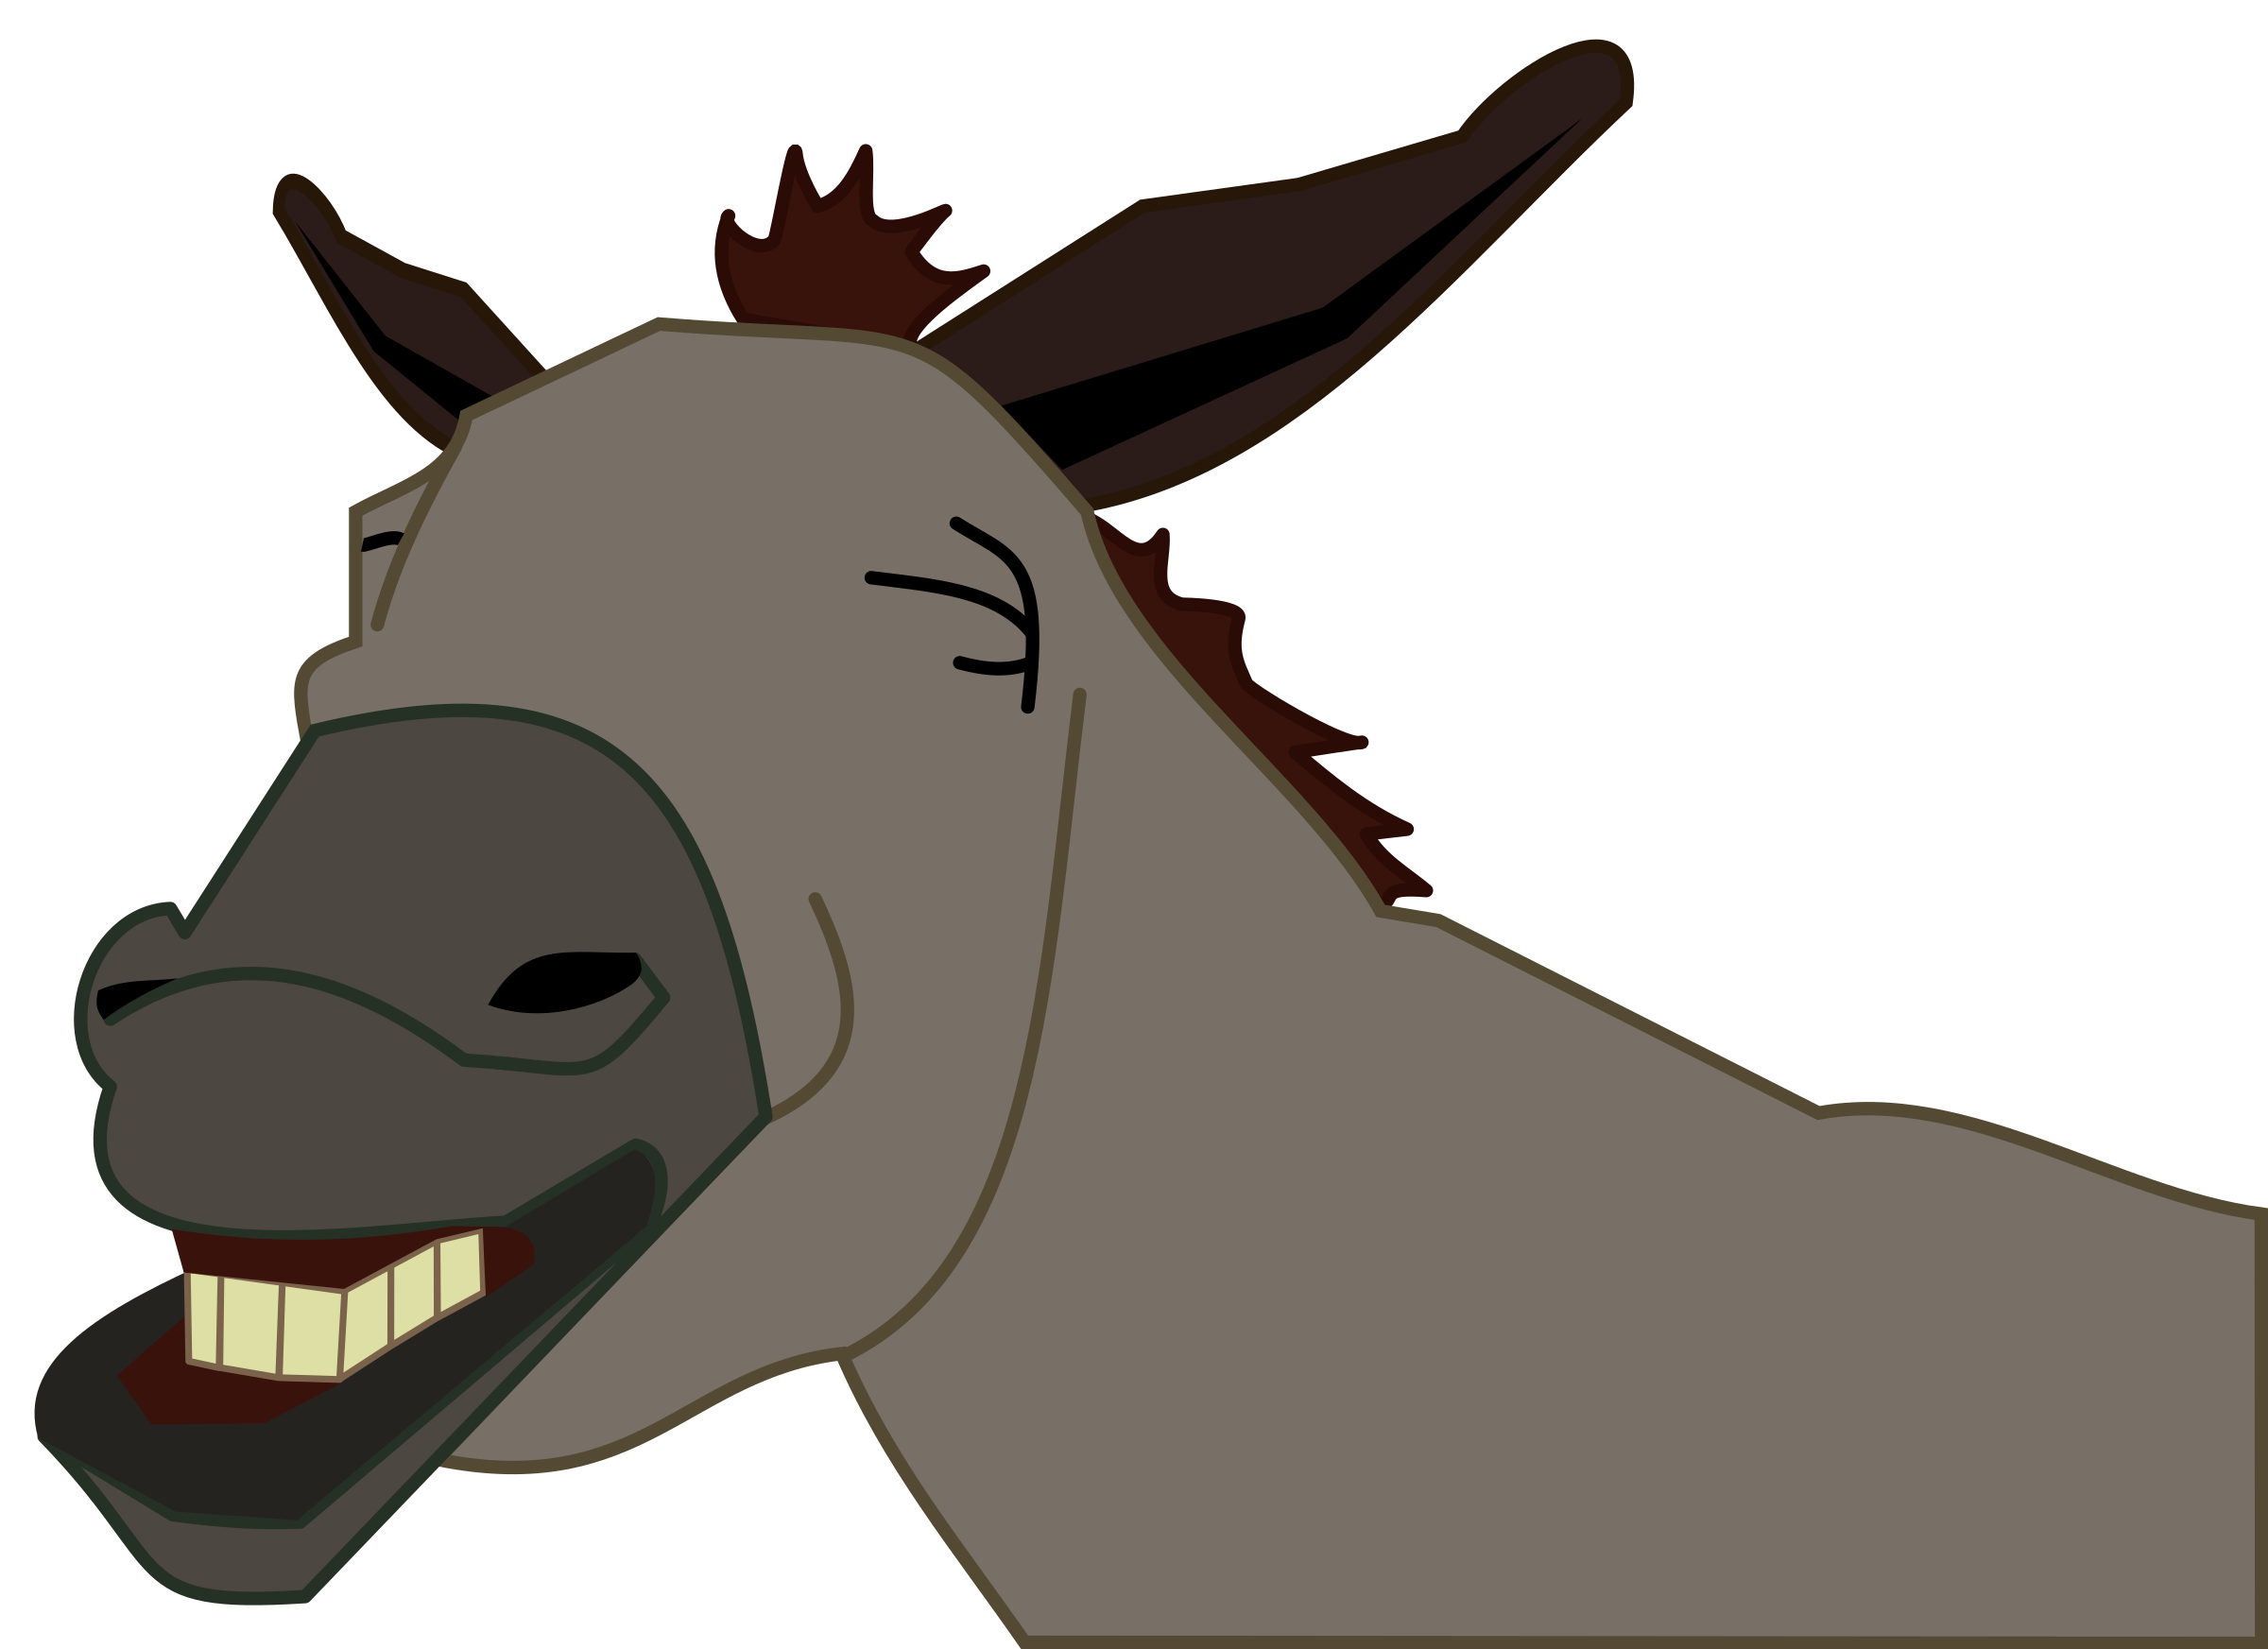 Silhouette at getdrawings com. Head clipart donkey